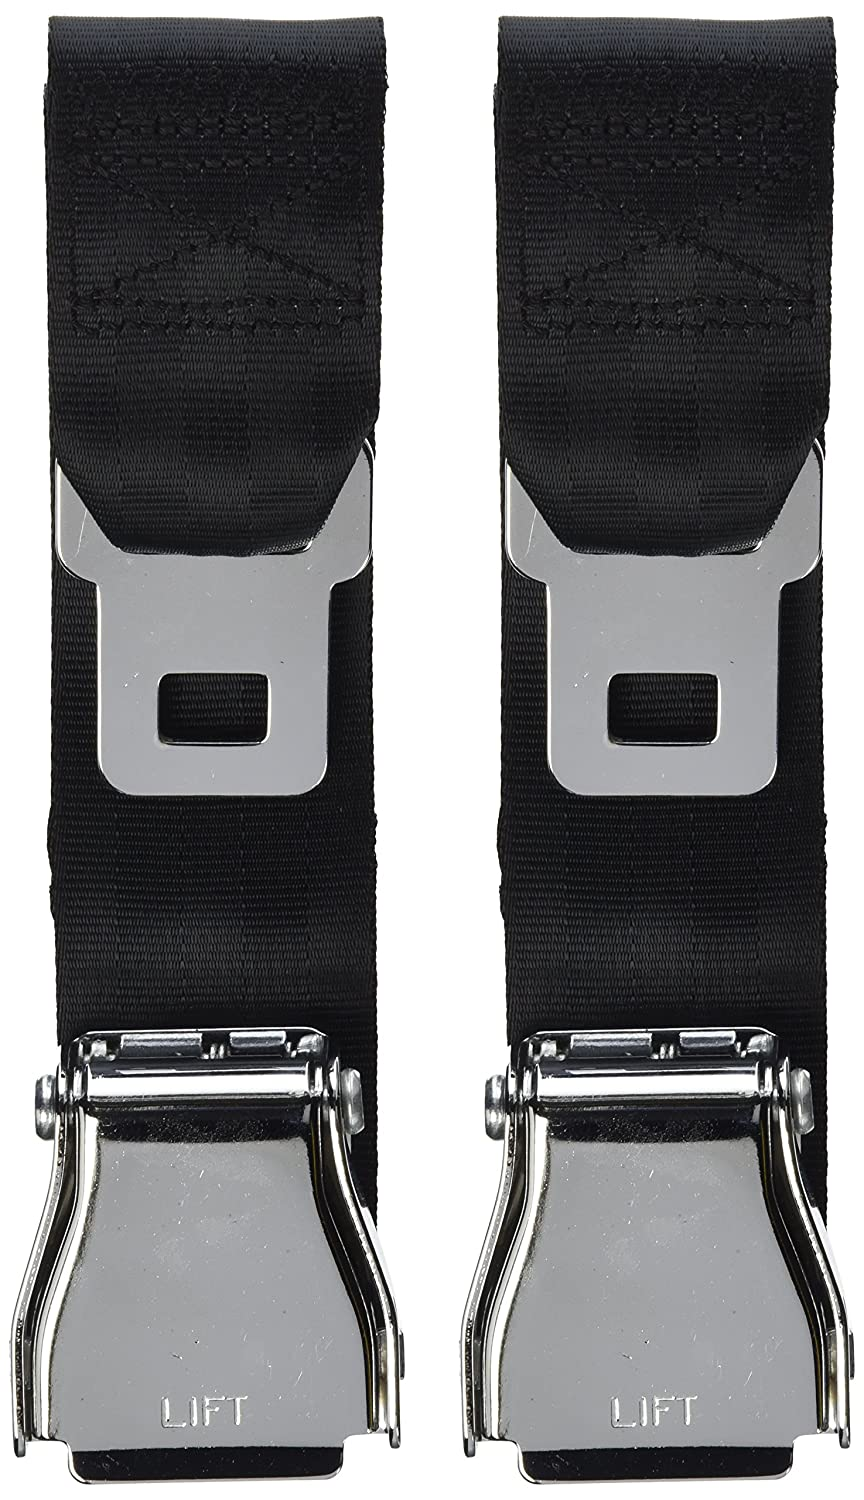 E4 SAFETY CERTIFIED Airplane Seatbelt Extensions (2-pack) - FITS ALL AIRLINES (except Southwest) - FREE VELOUR POUCH HY Auto Parts Co. Ltd. 6240061